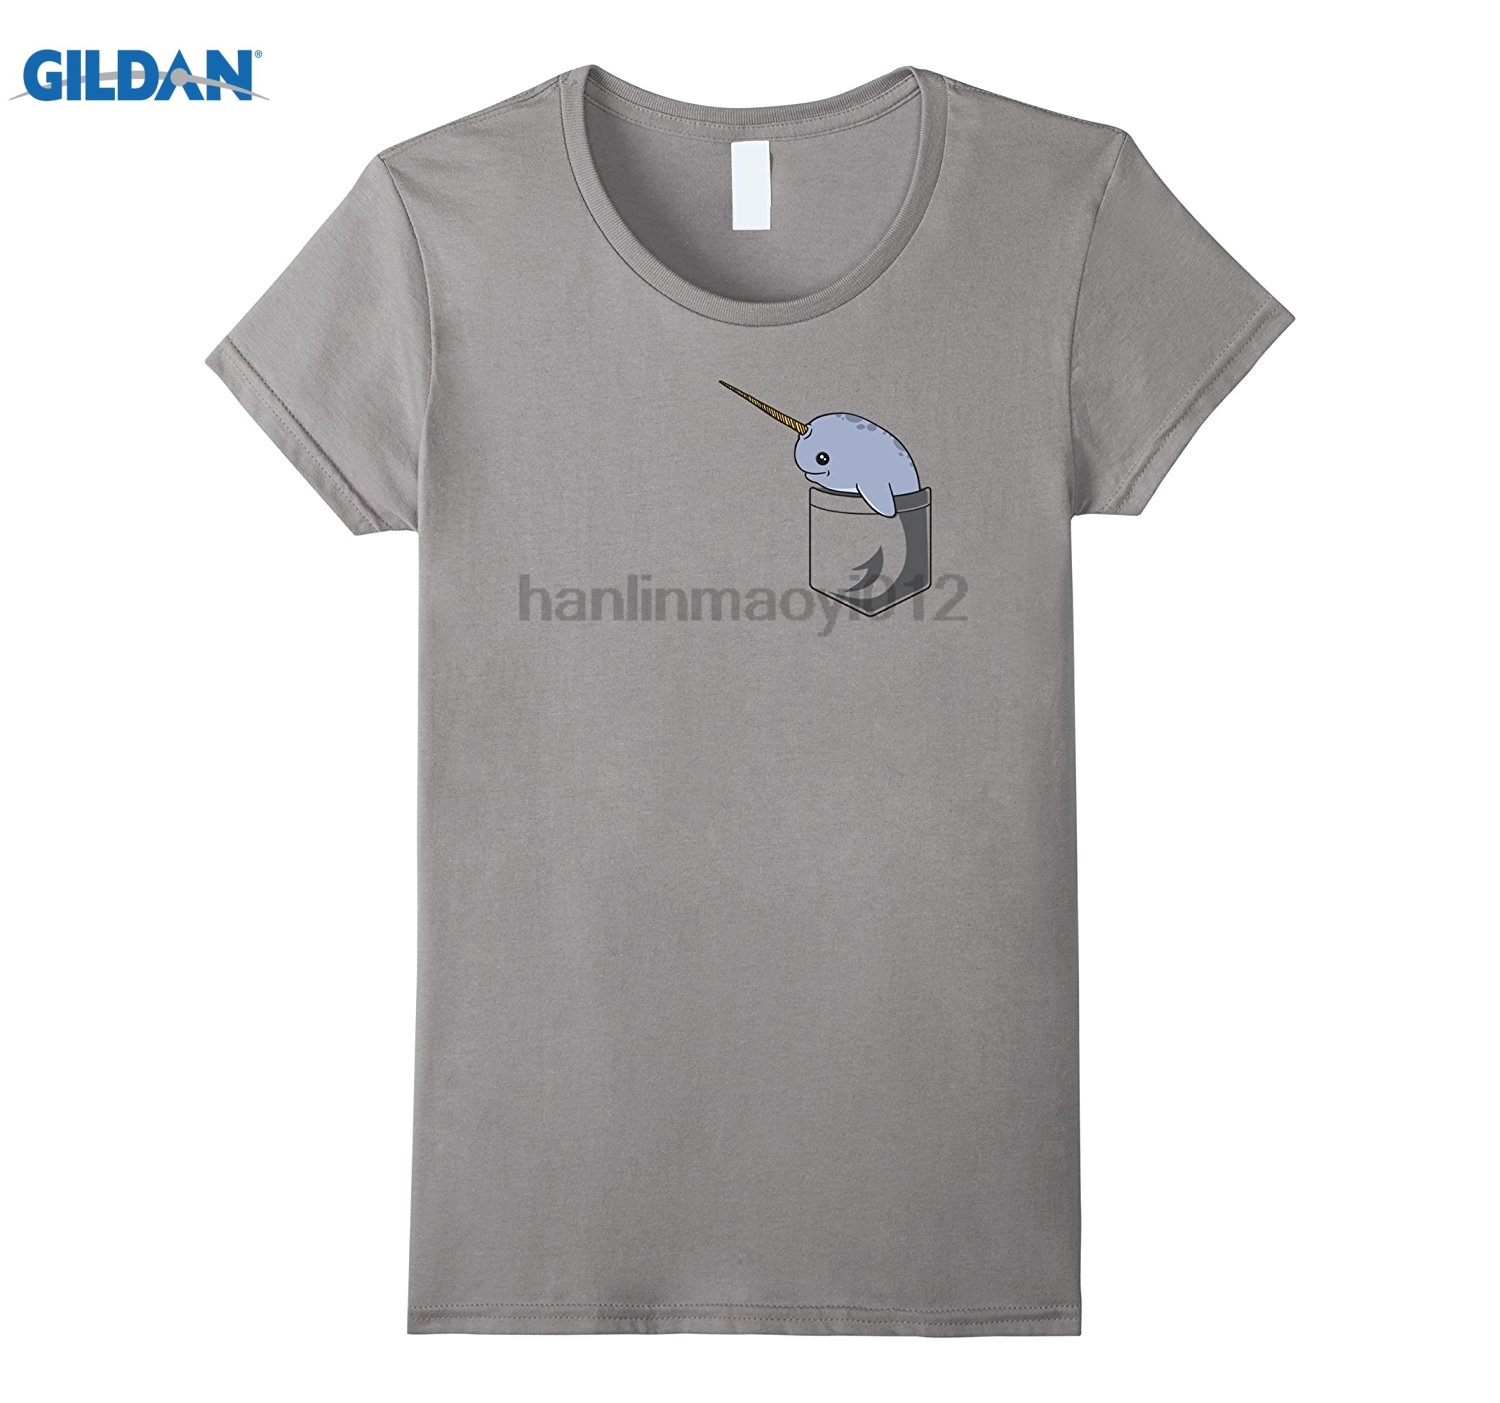 GILDAN Cute Narwhal T-Shirt - Pocket Narwhal Shirt Dress female T-shirt